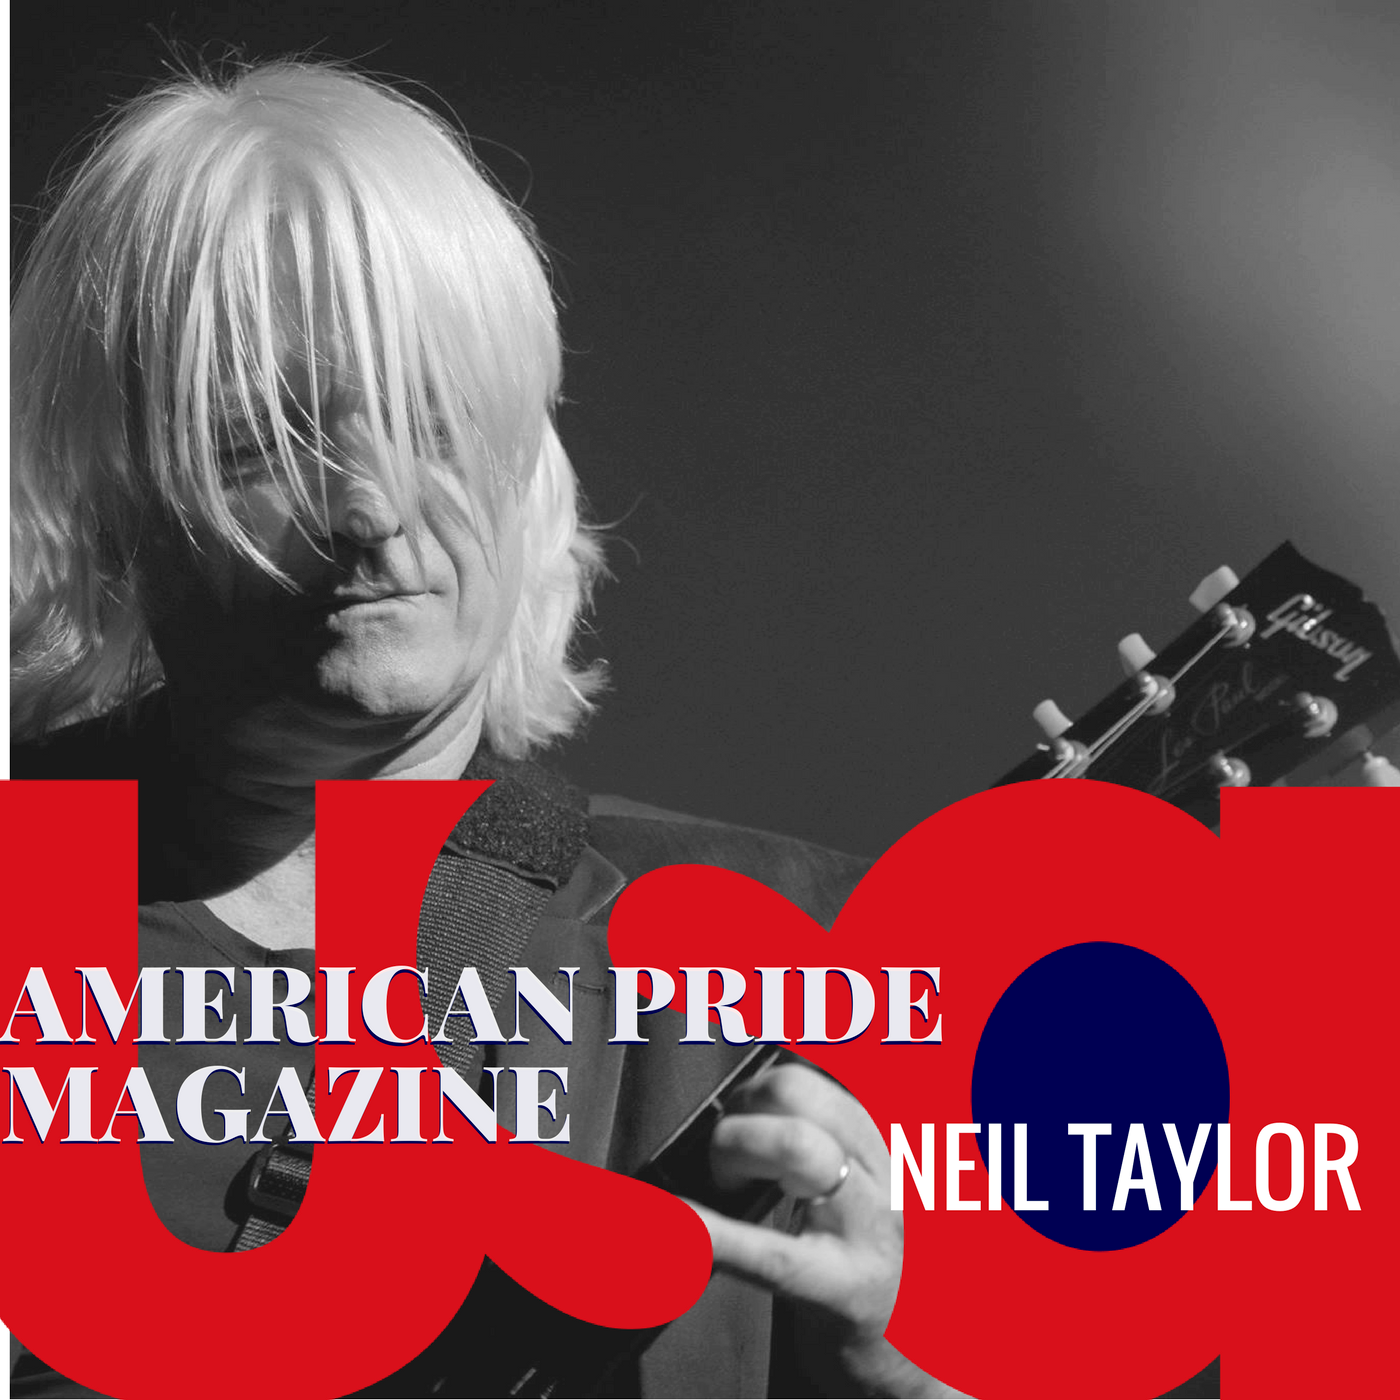 Neil Taylor AMERIAN PRIDE MAGAZINE.png